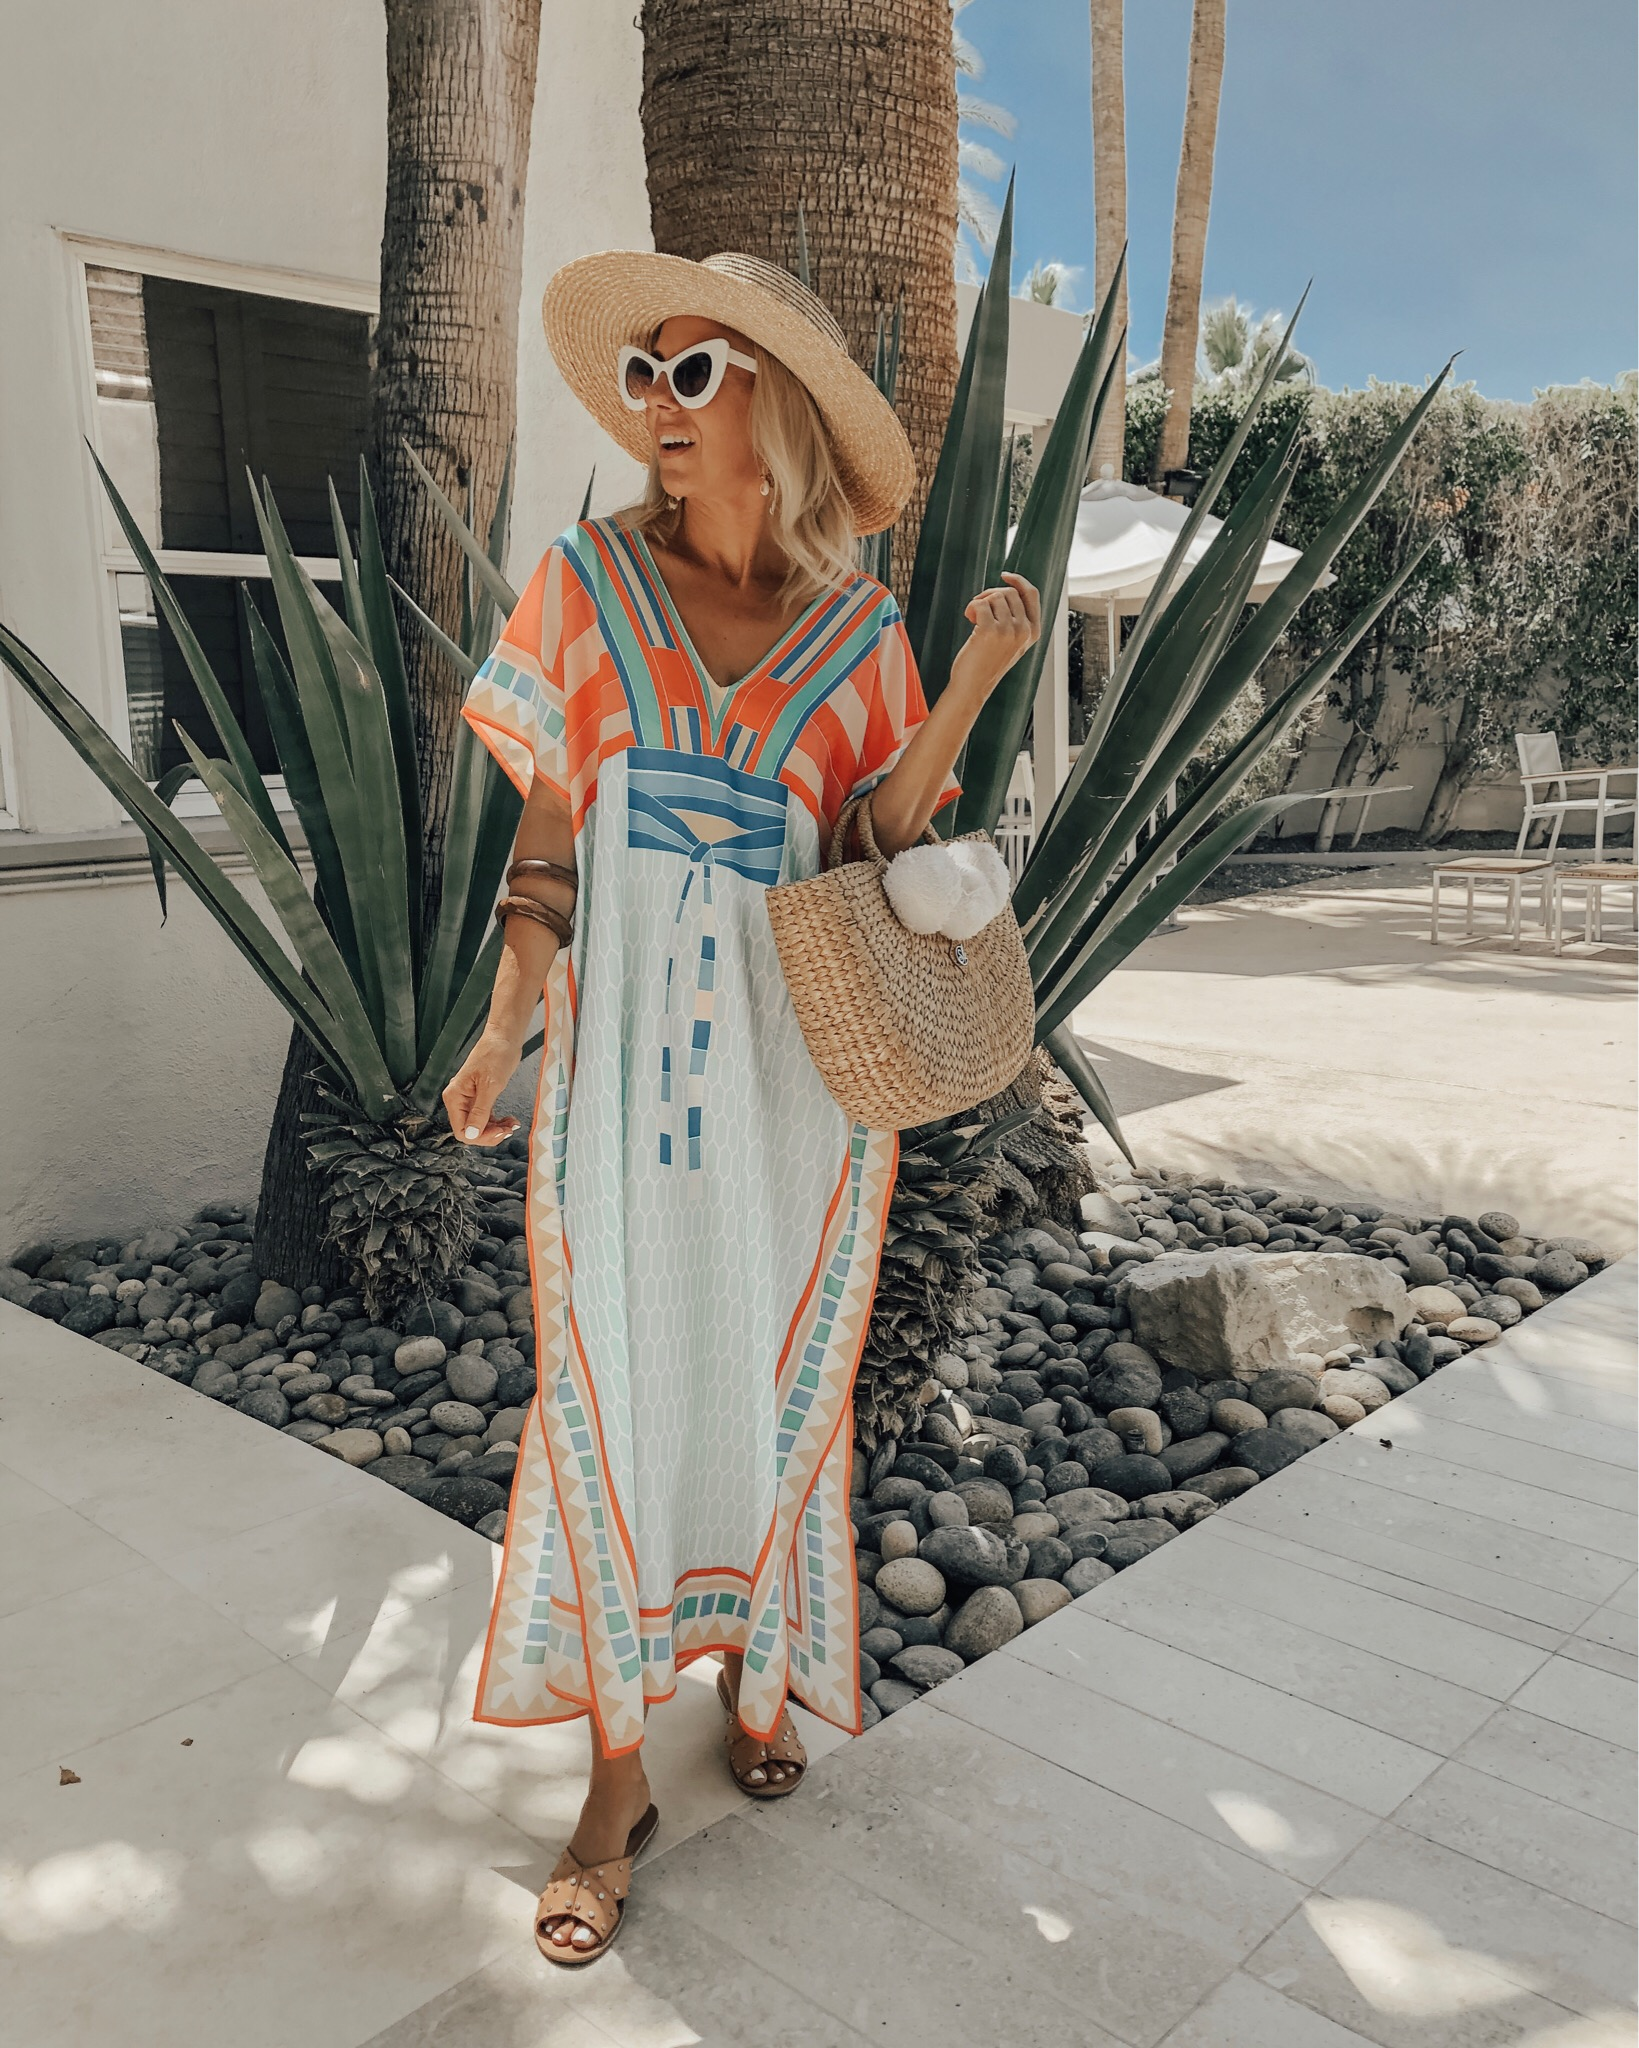 JUNE TOP 10- Jaclyn De Leon Style- No surprise that 8 out of the top 10 sellers were Amazon Finds. Favorites from boho dresses, to jewelry organizer, espadrilles and the glow and get it stick.